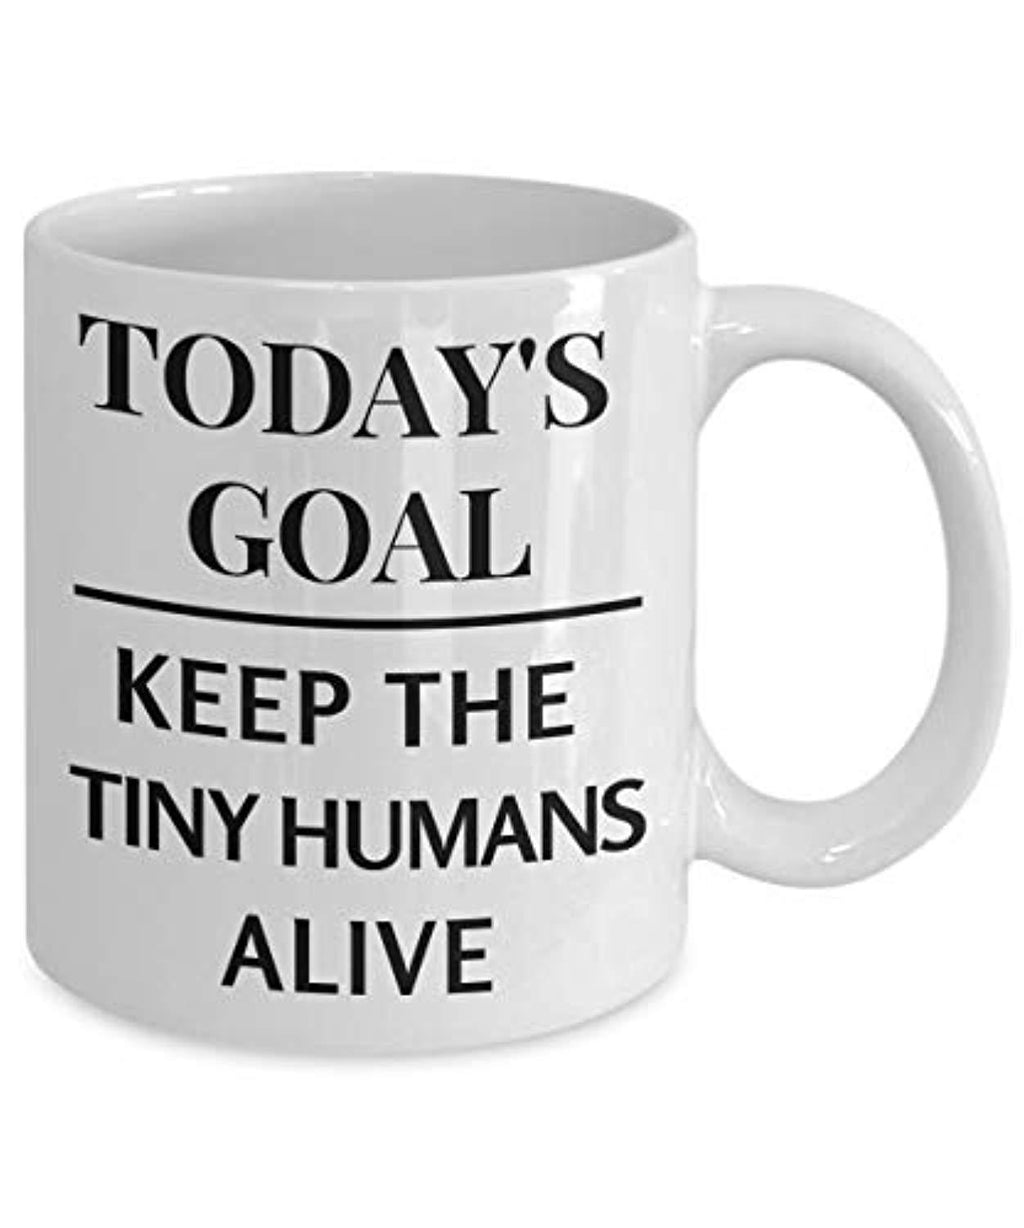 Today's Goal Keep The Tiny Humans Alive Funny Mug for Moms Dads Teachers Day Care Workers